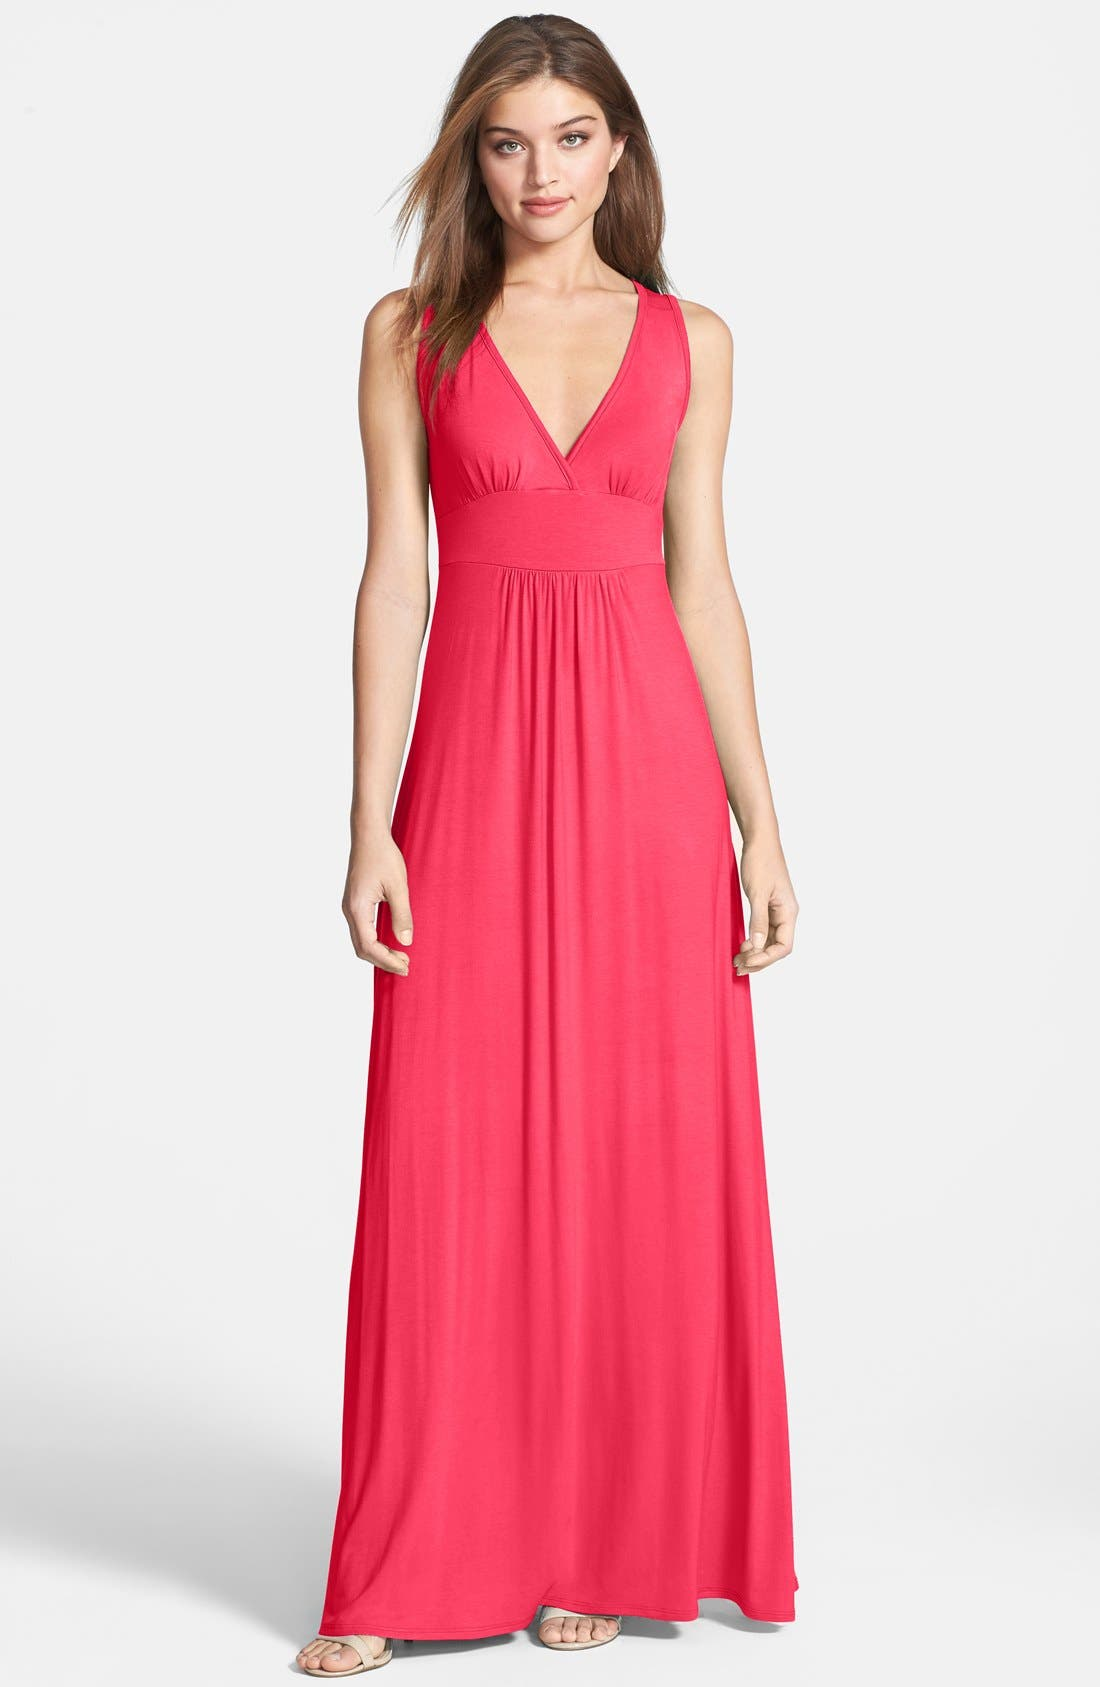 Alternate Image 1 Selected - Loveappella V-Neck Stretch Knit Maxi Dress